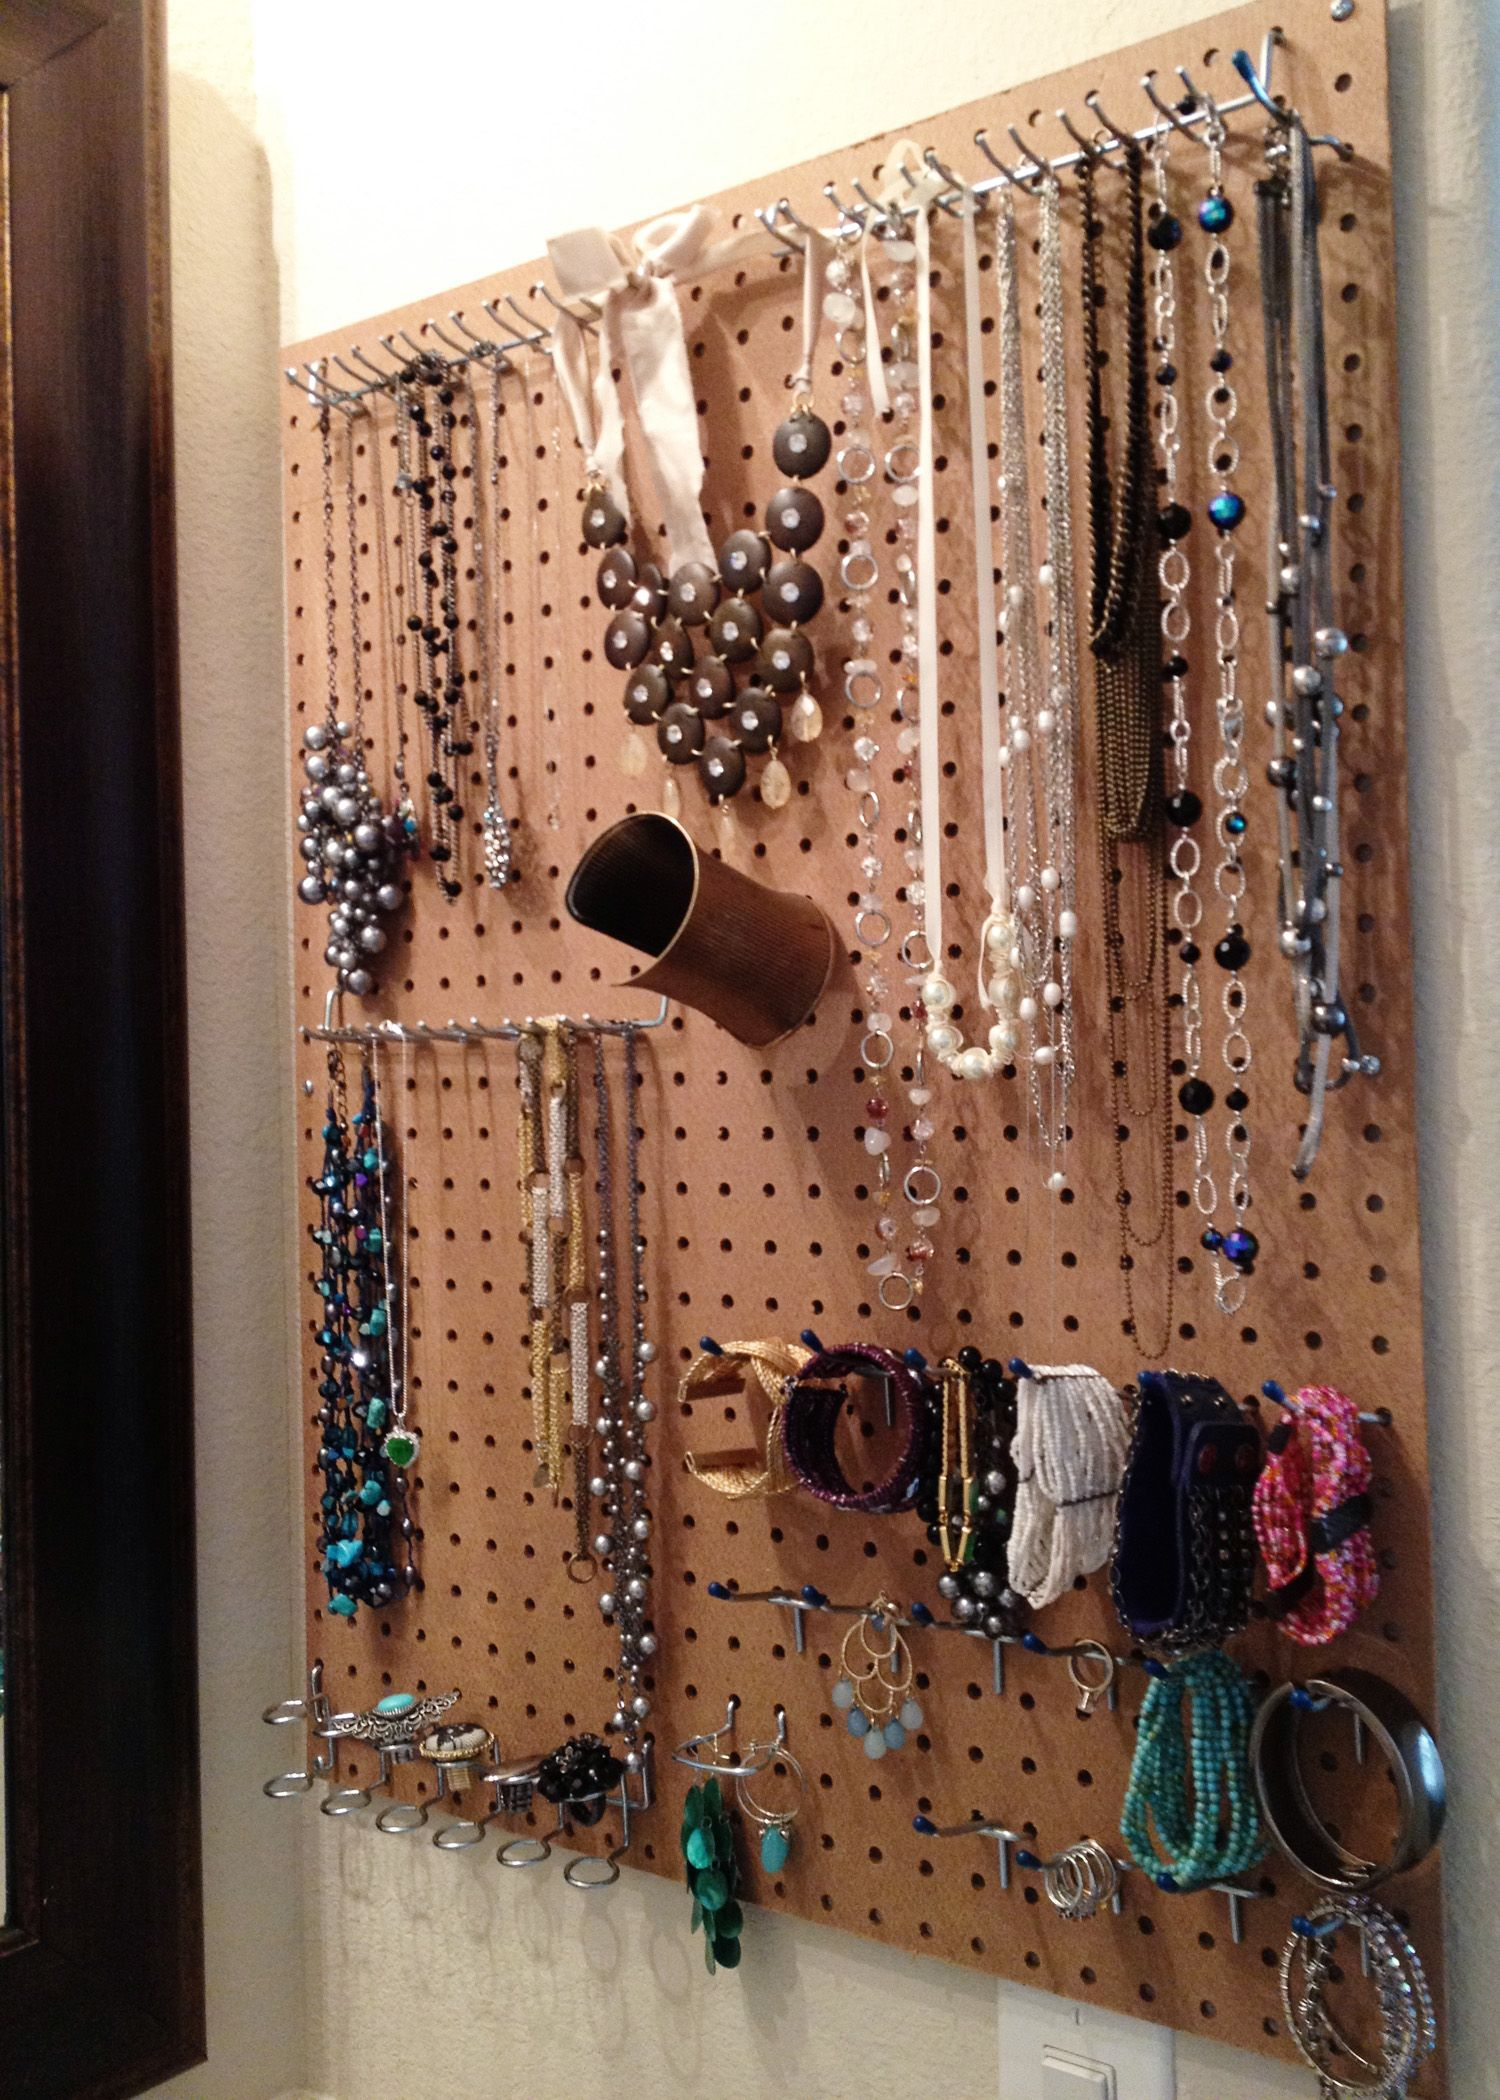 Bracelet Organizer Ideas Pegboard Jewelry Organizer All Of The Supplies Used To Make This